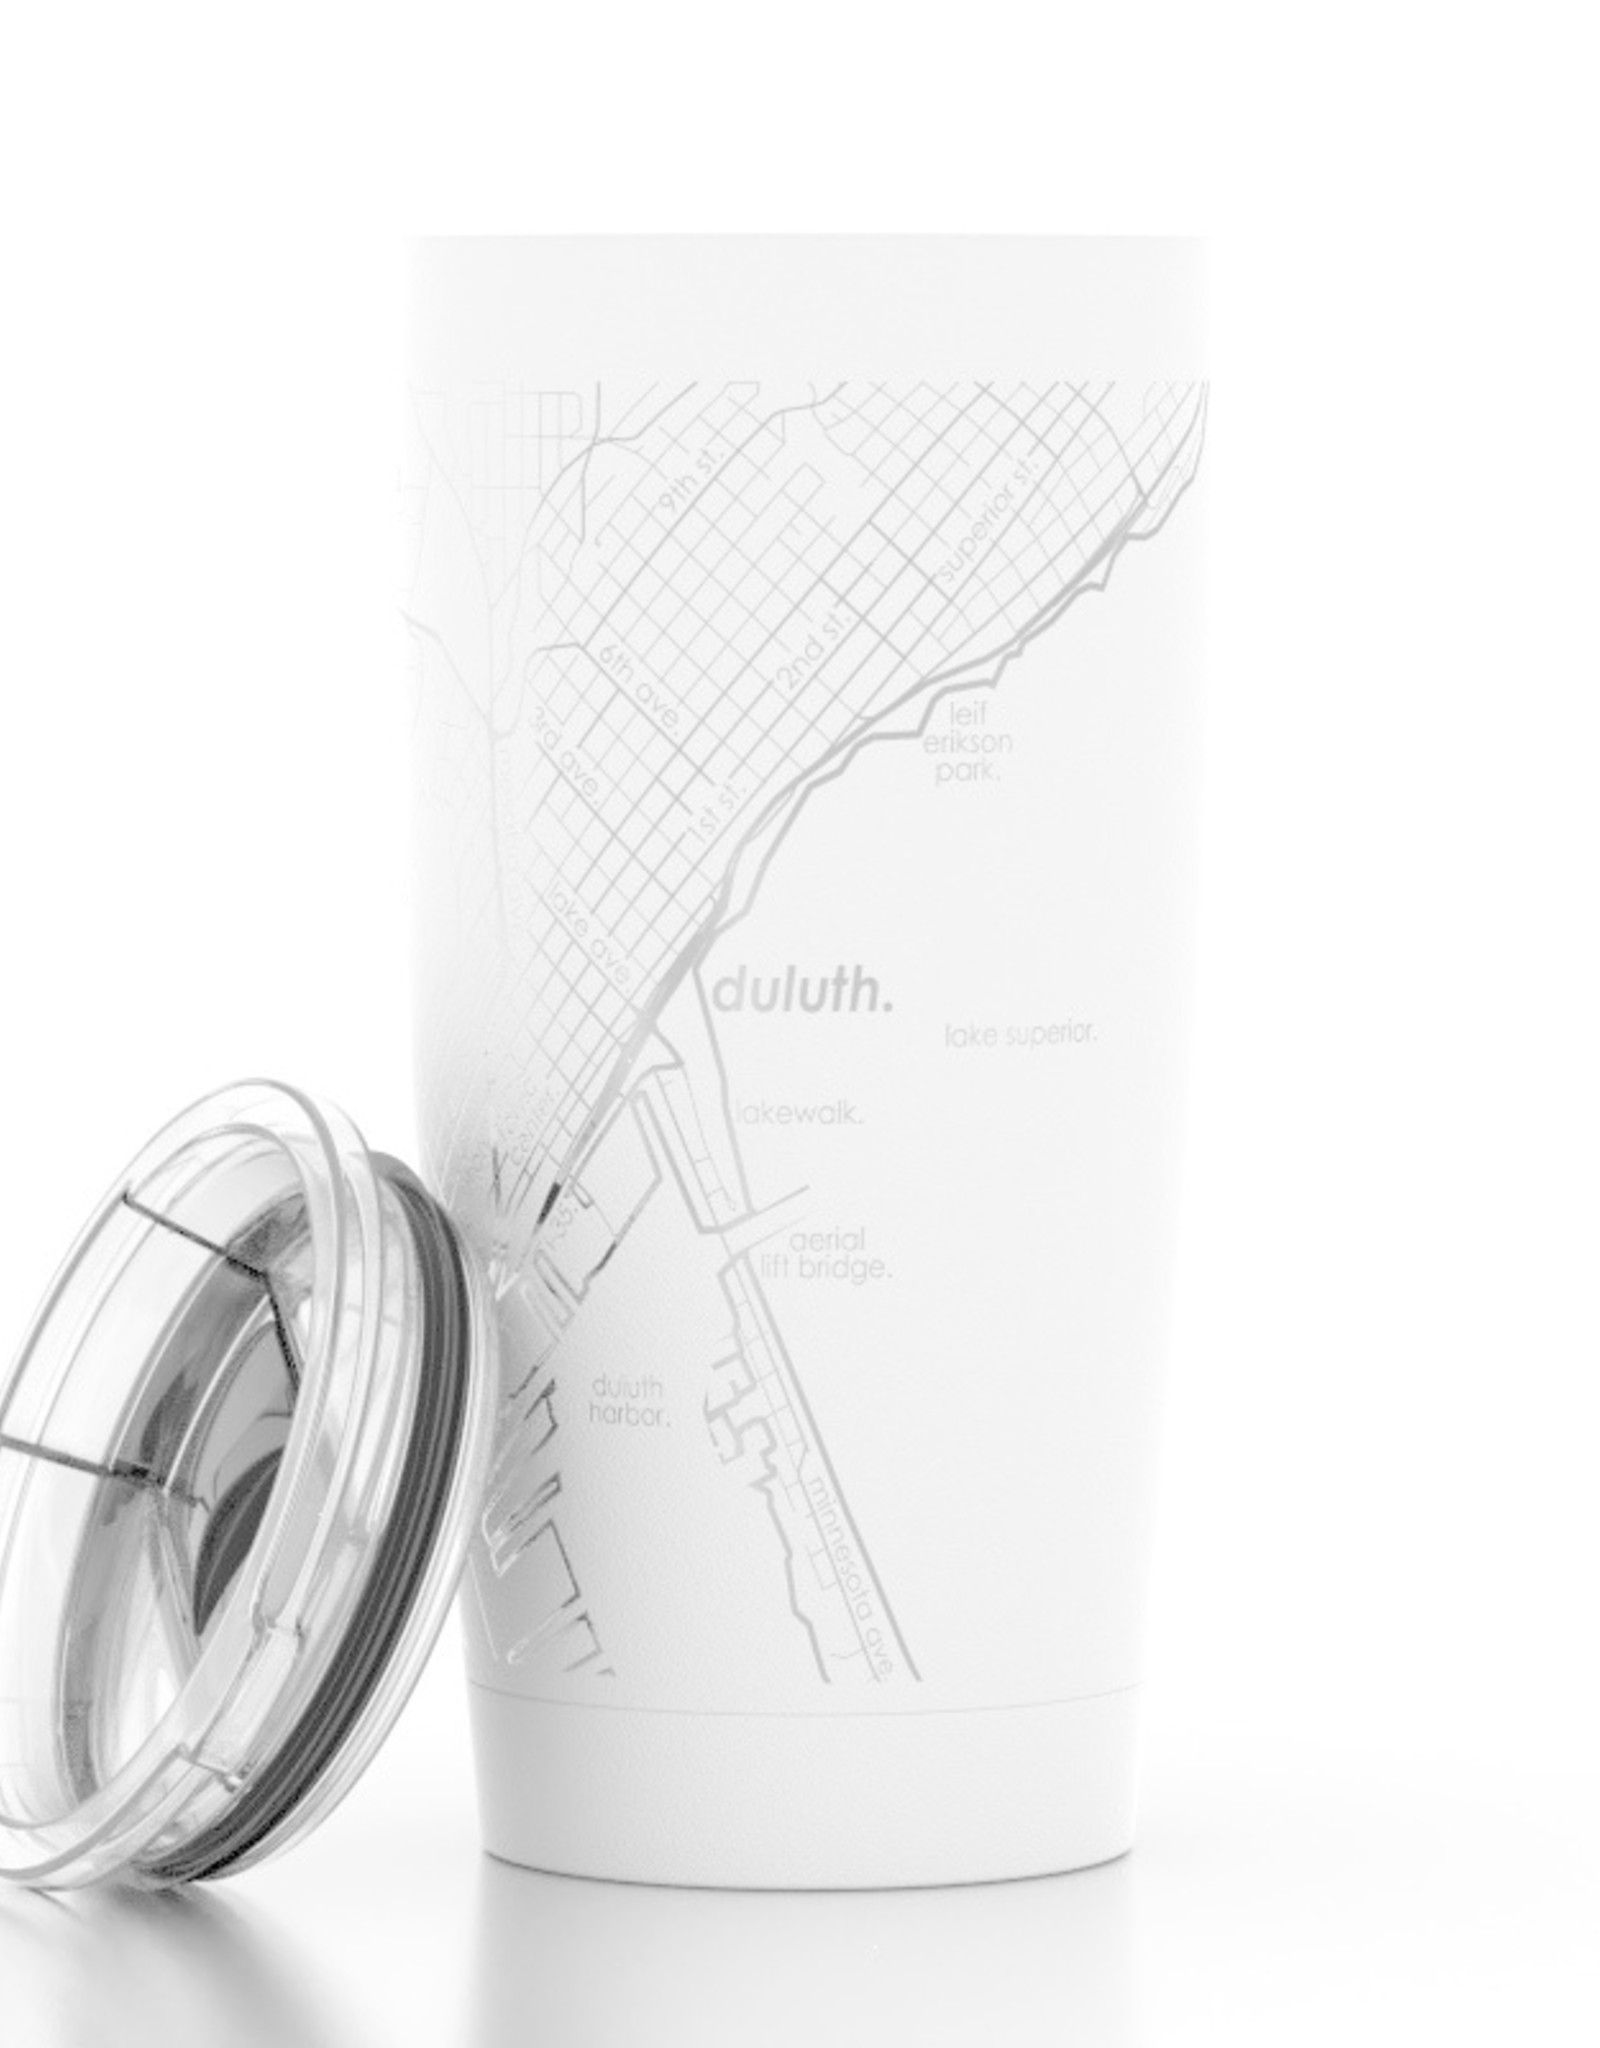 Well Told Duluth Insulated Tumbler 20 oz